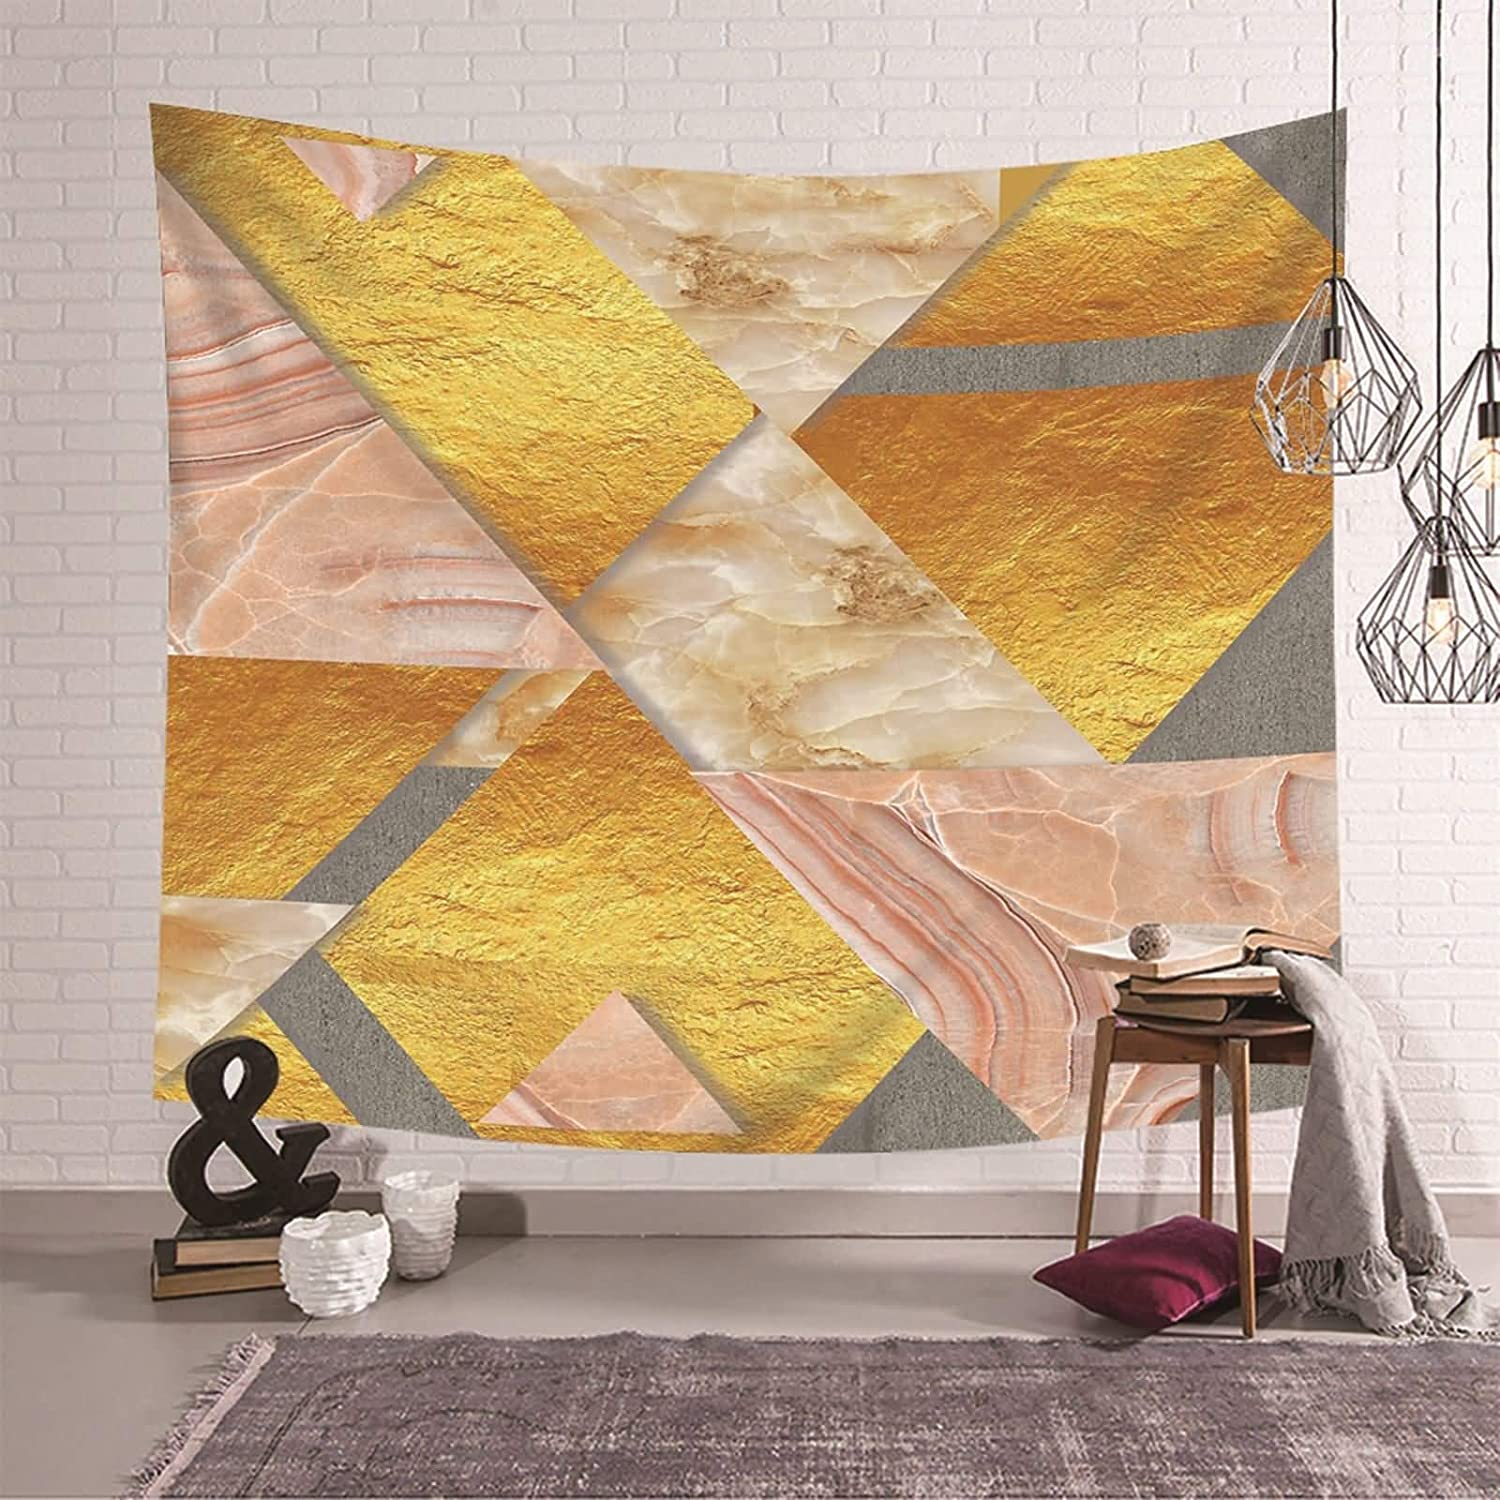 Gnzoe Art Tapestry Wall Kansas City Mall Hanging Pink Latest item Textu Polyester Marble Gold